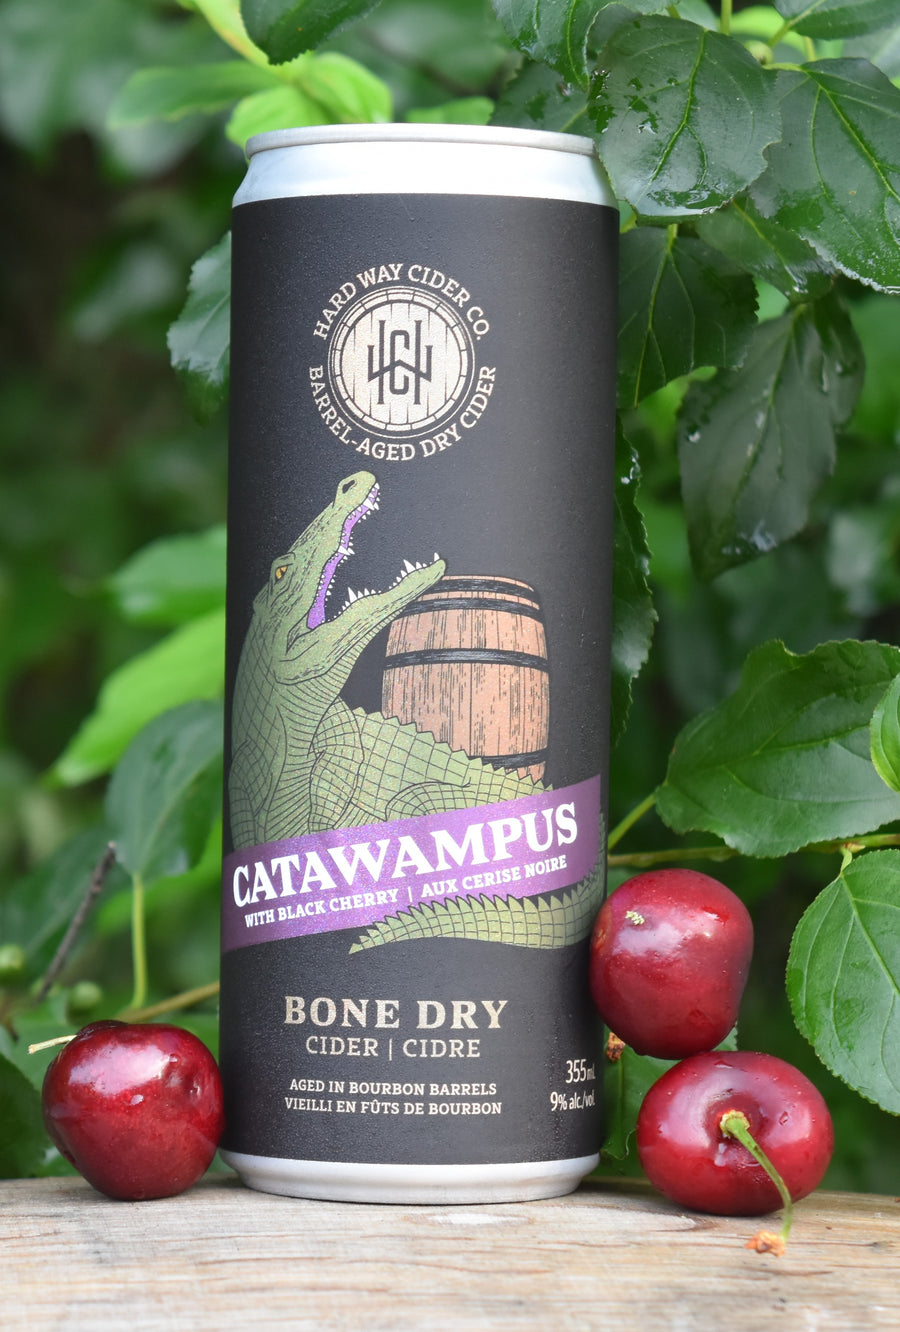 Can of bone-dry hard cider, aged in bourbon barrels with black cherry.